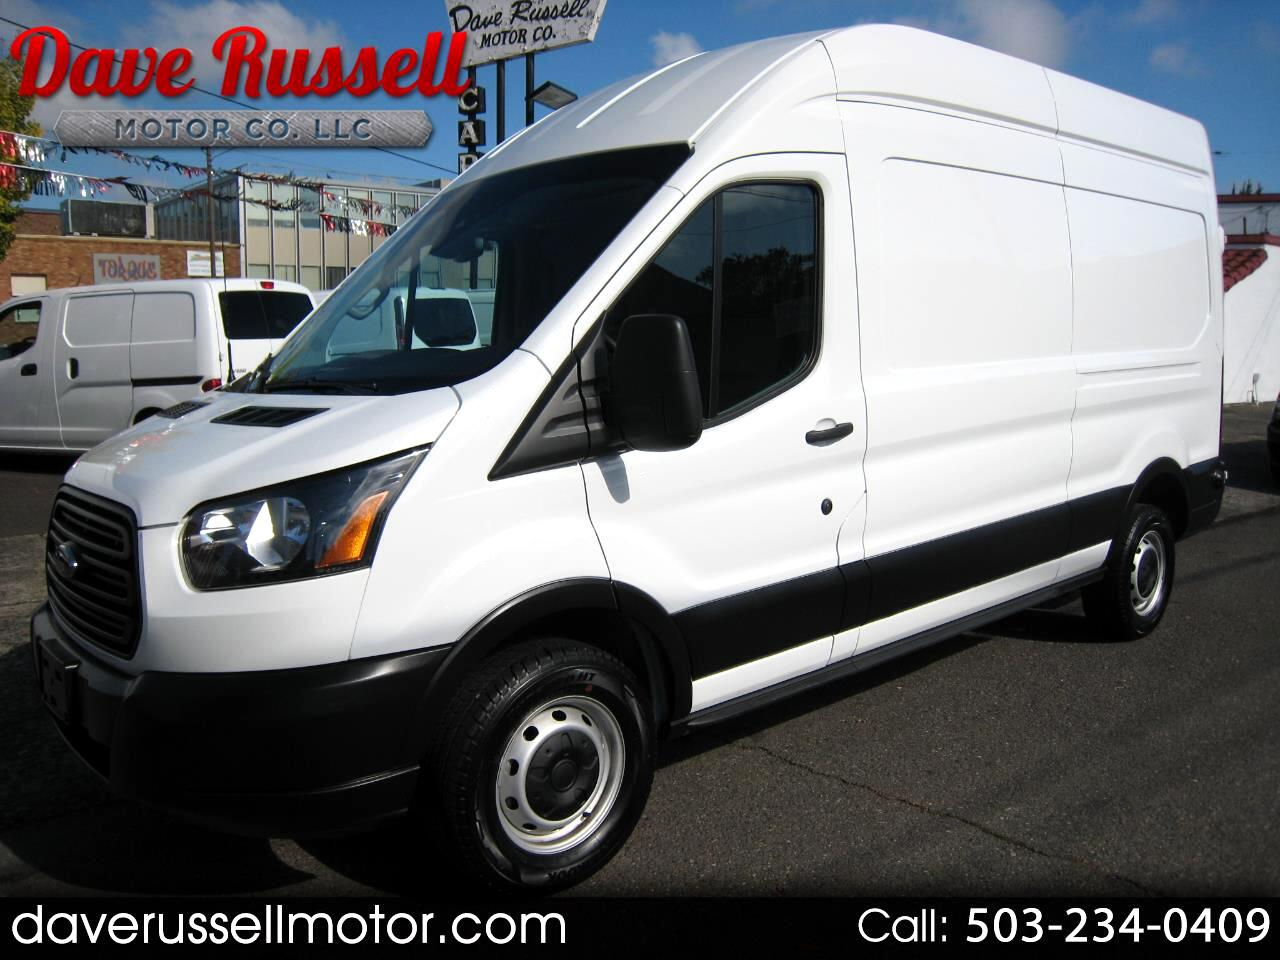 2019 Ford Transit T-250 High Roof Extended Cargo Van 148-in. WB